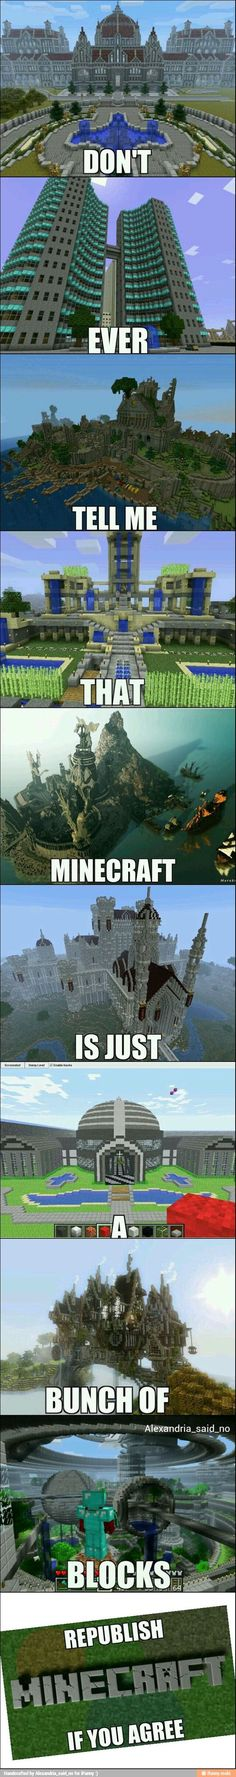 Amazing things can be done if you put in effort and commitment. The time will come naturally. Minecraft is an example but this message applies to everything.